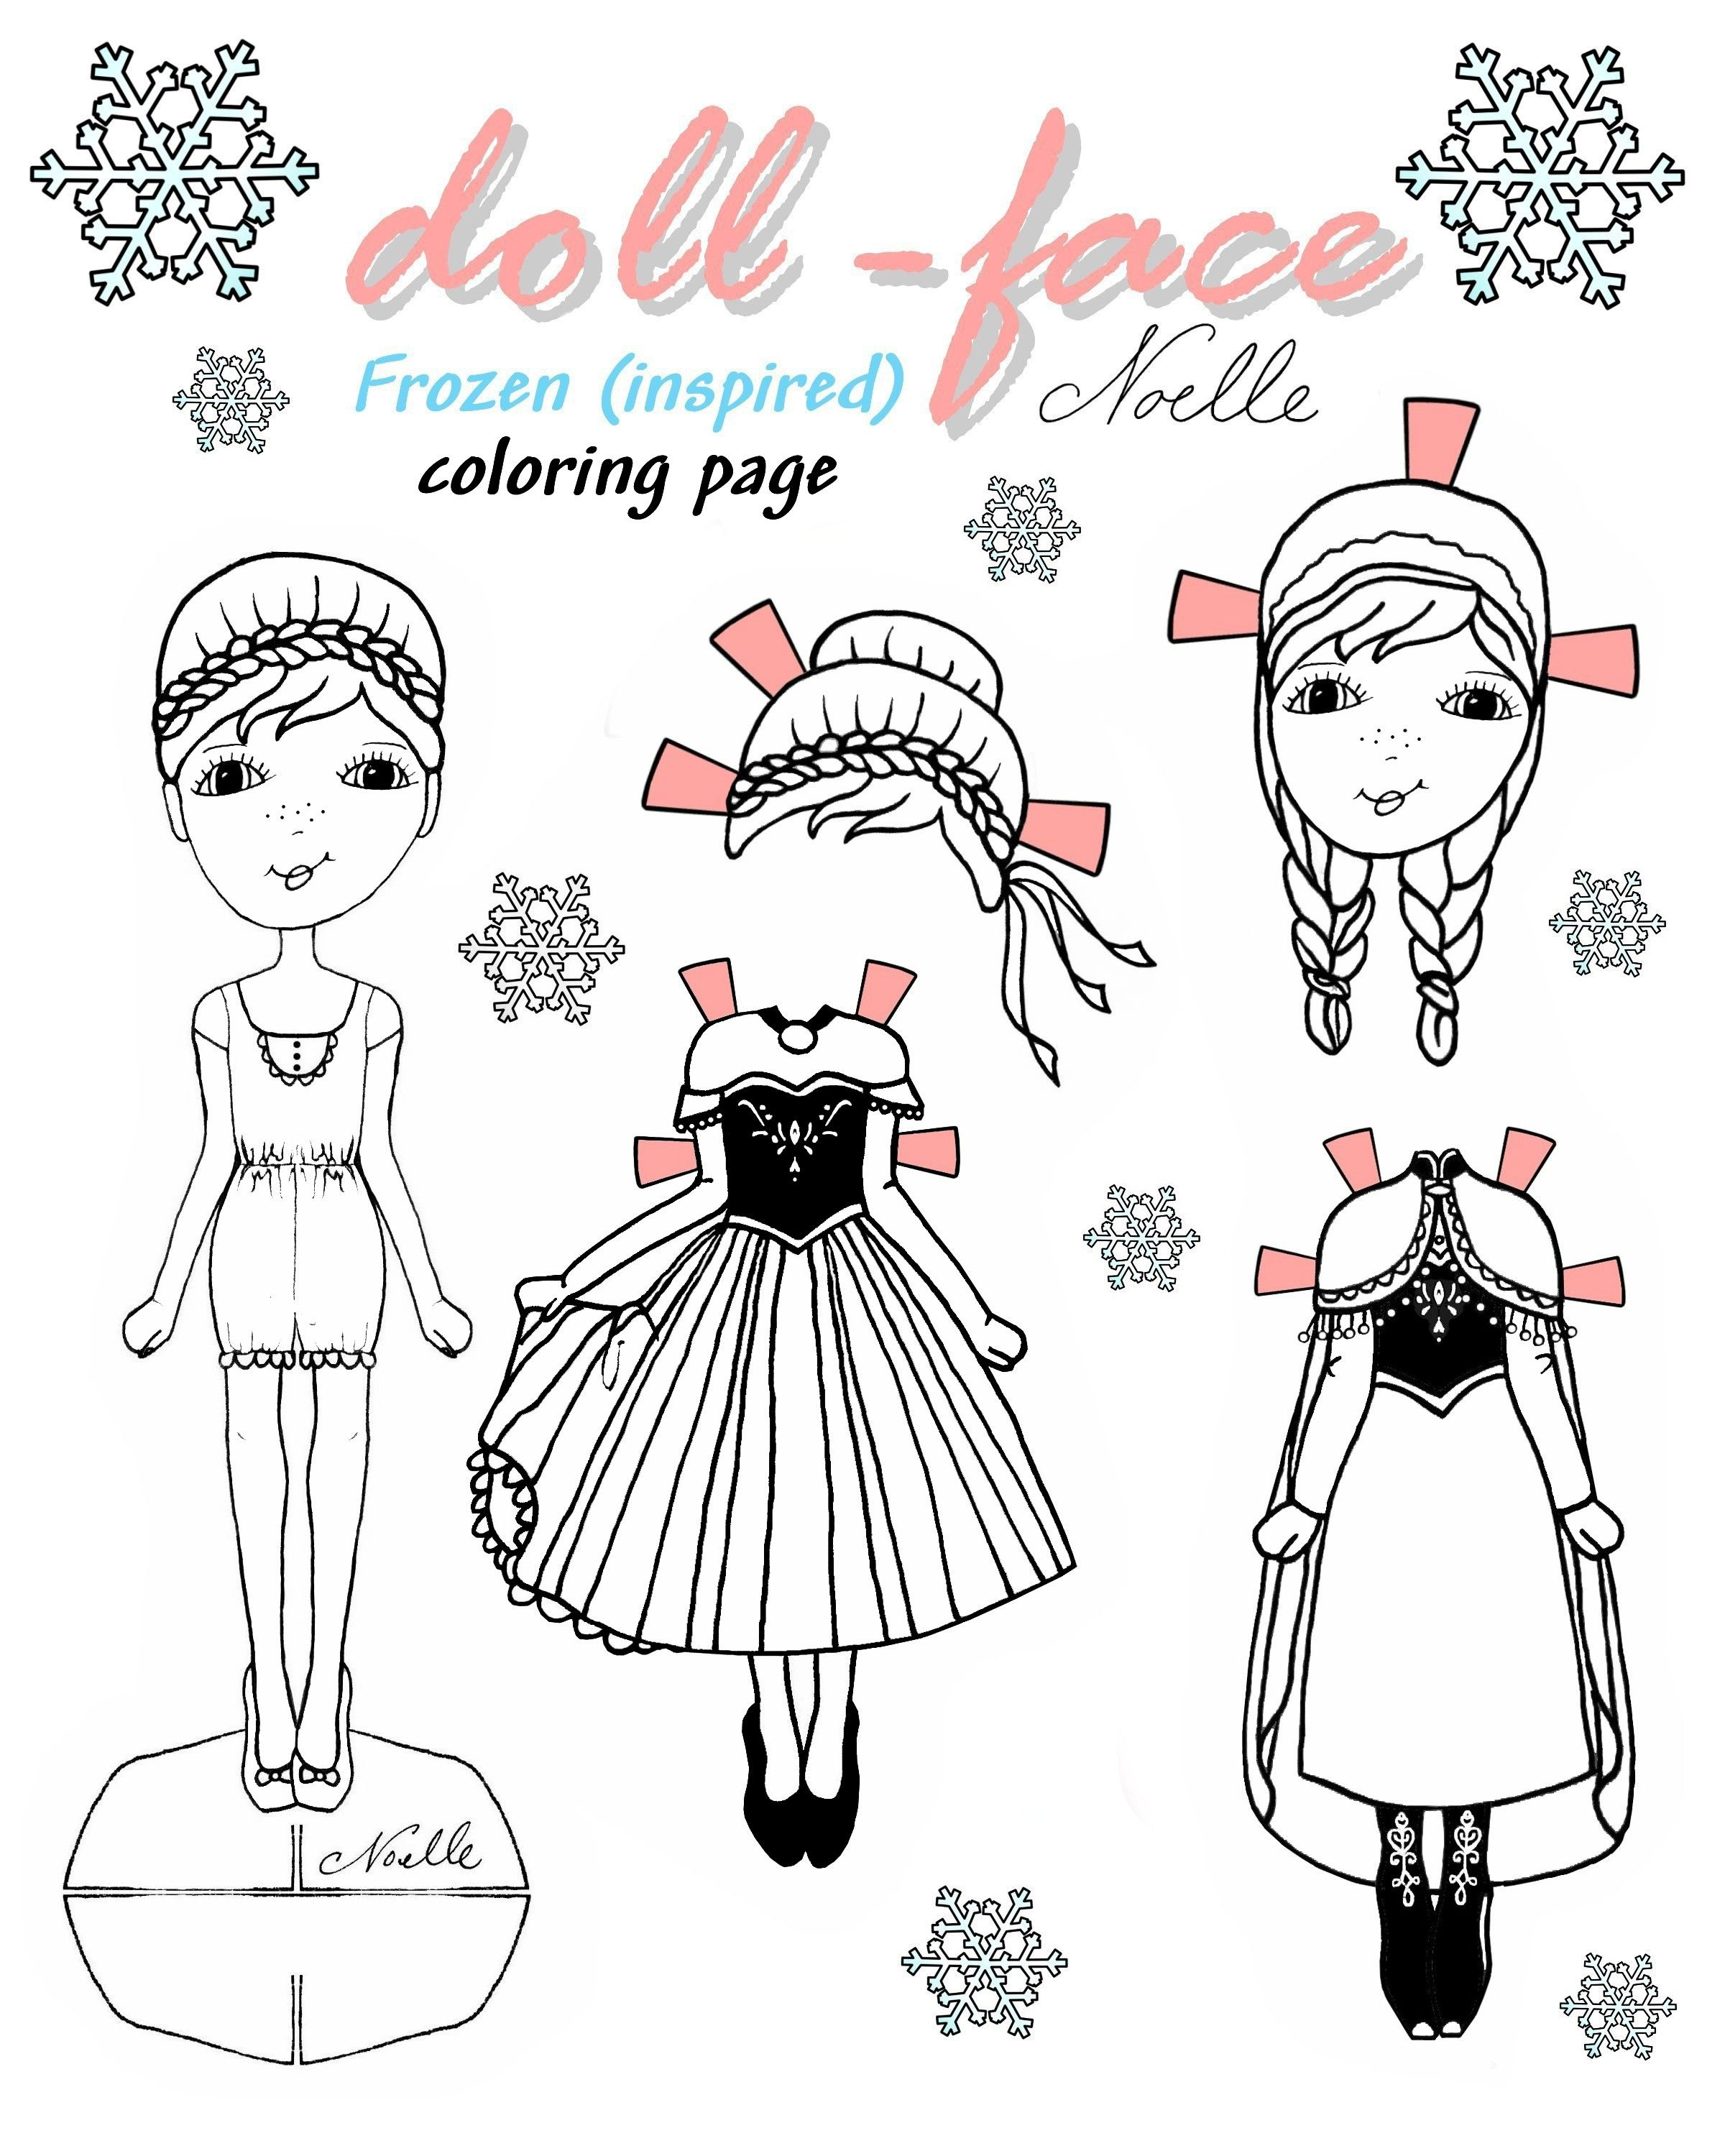 Little princess coloring pages - Doll Face Anna Coloring Page Diy Frozen Inspired Paper Doll Coloring